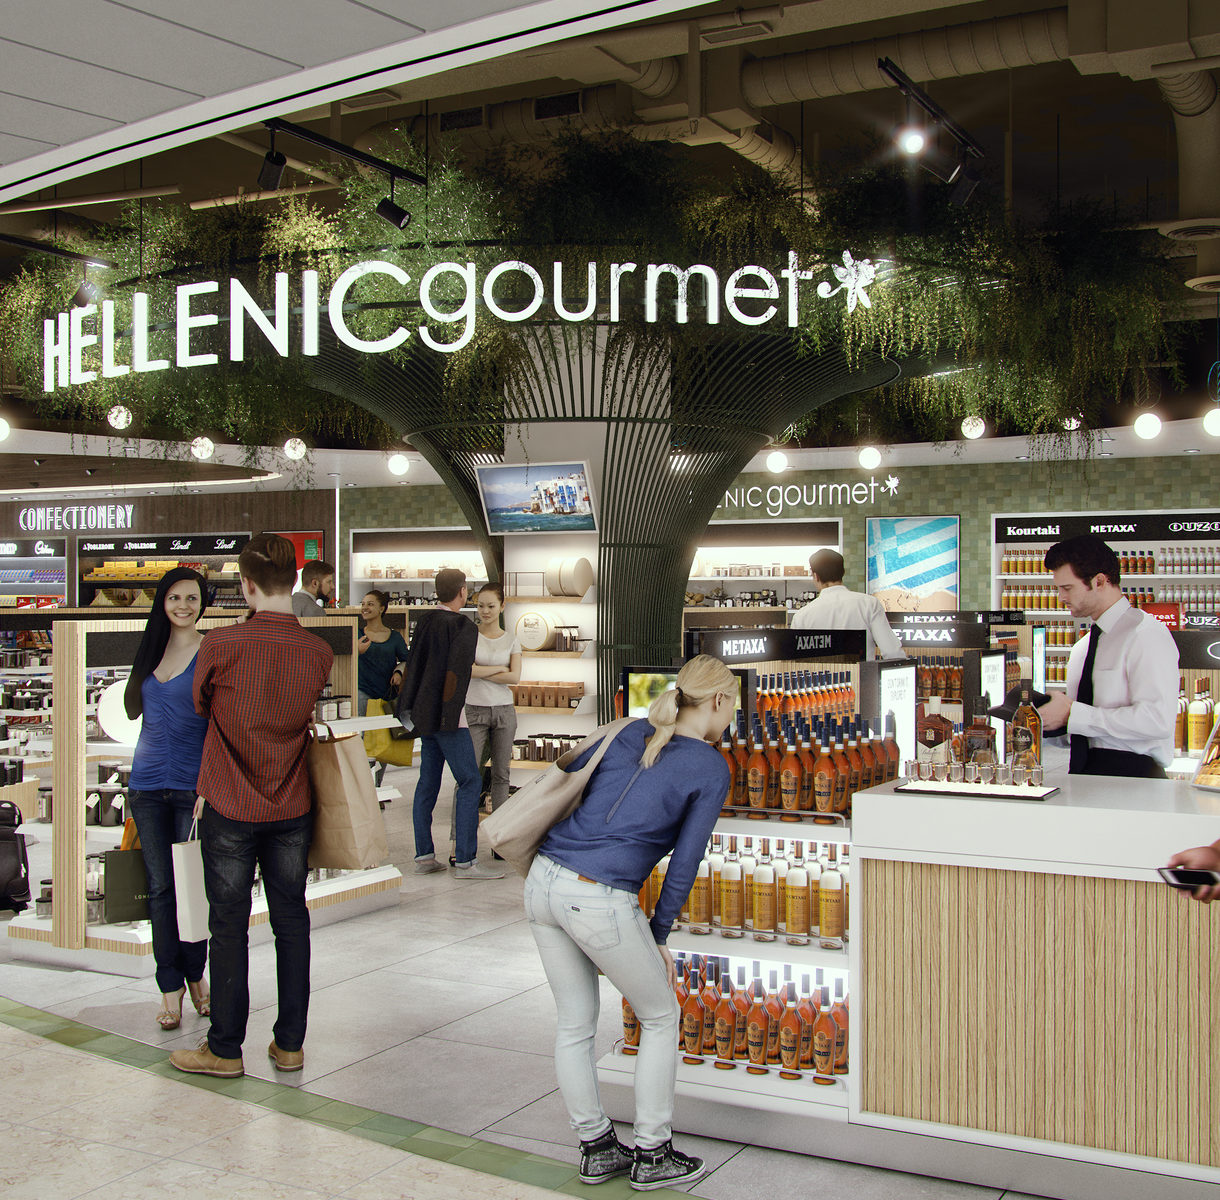 Tree gourmet design in travel store. Mostazadesign